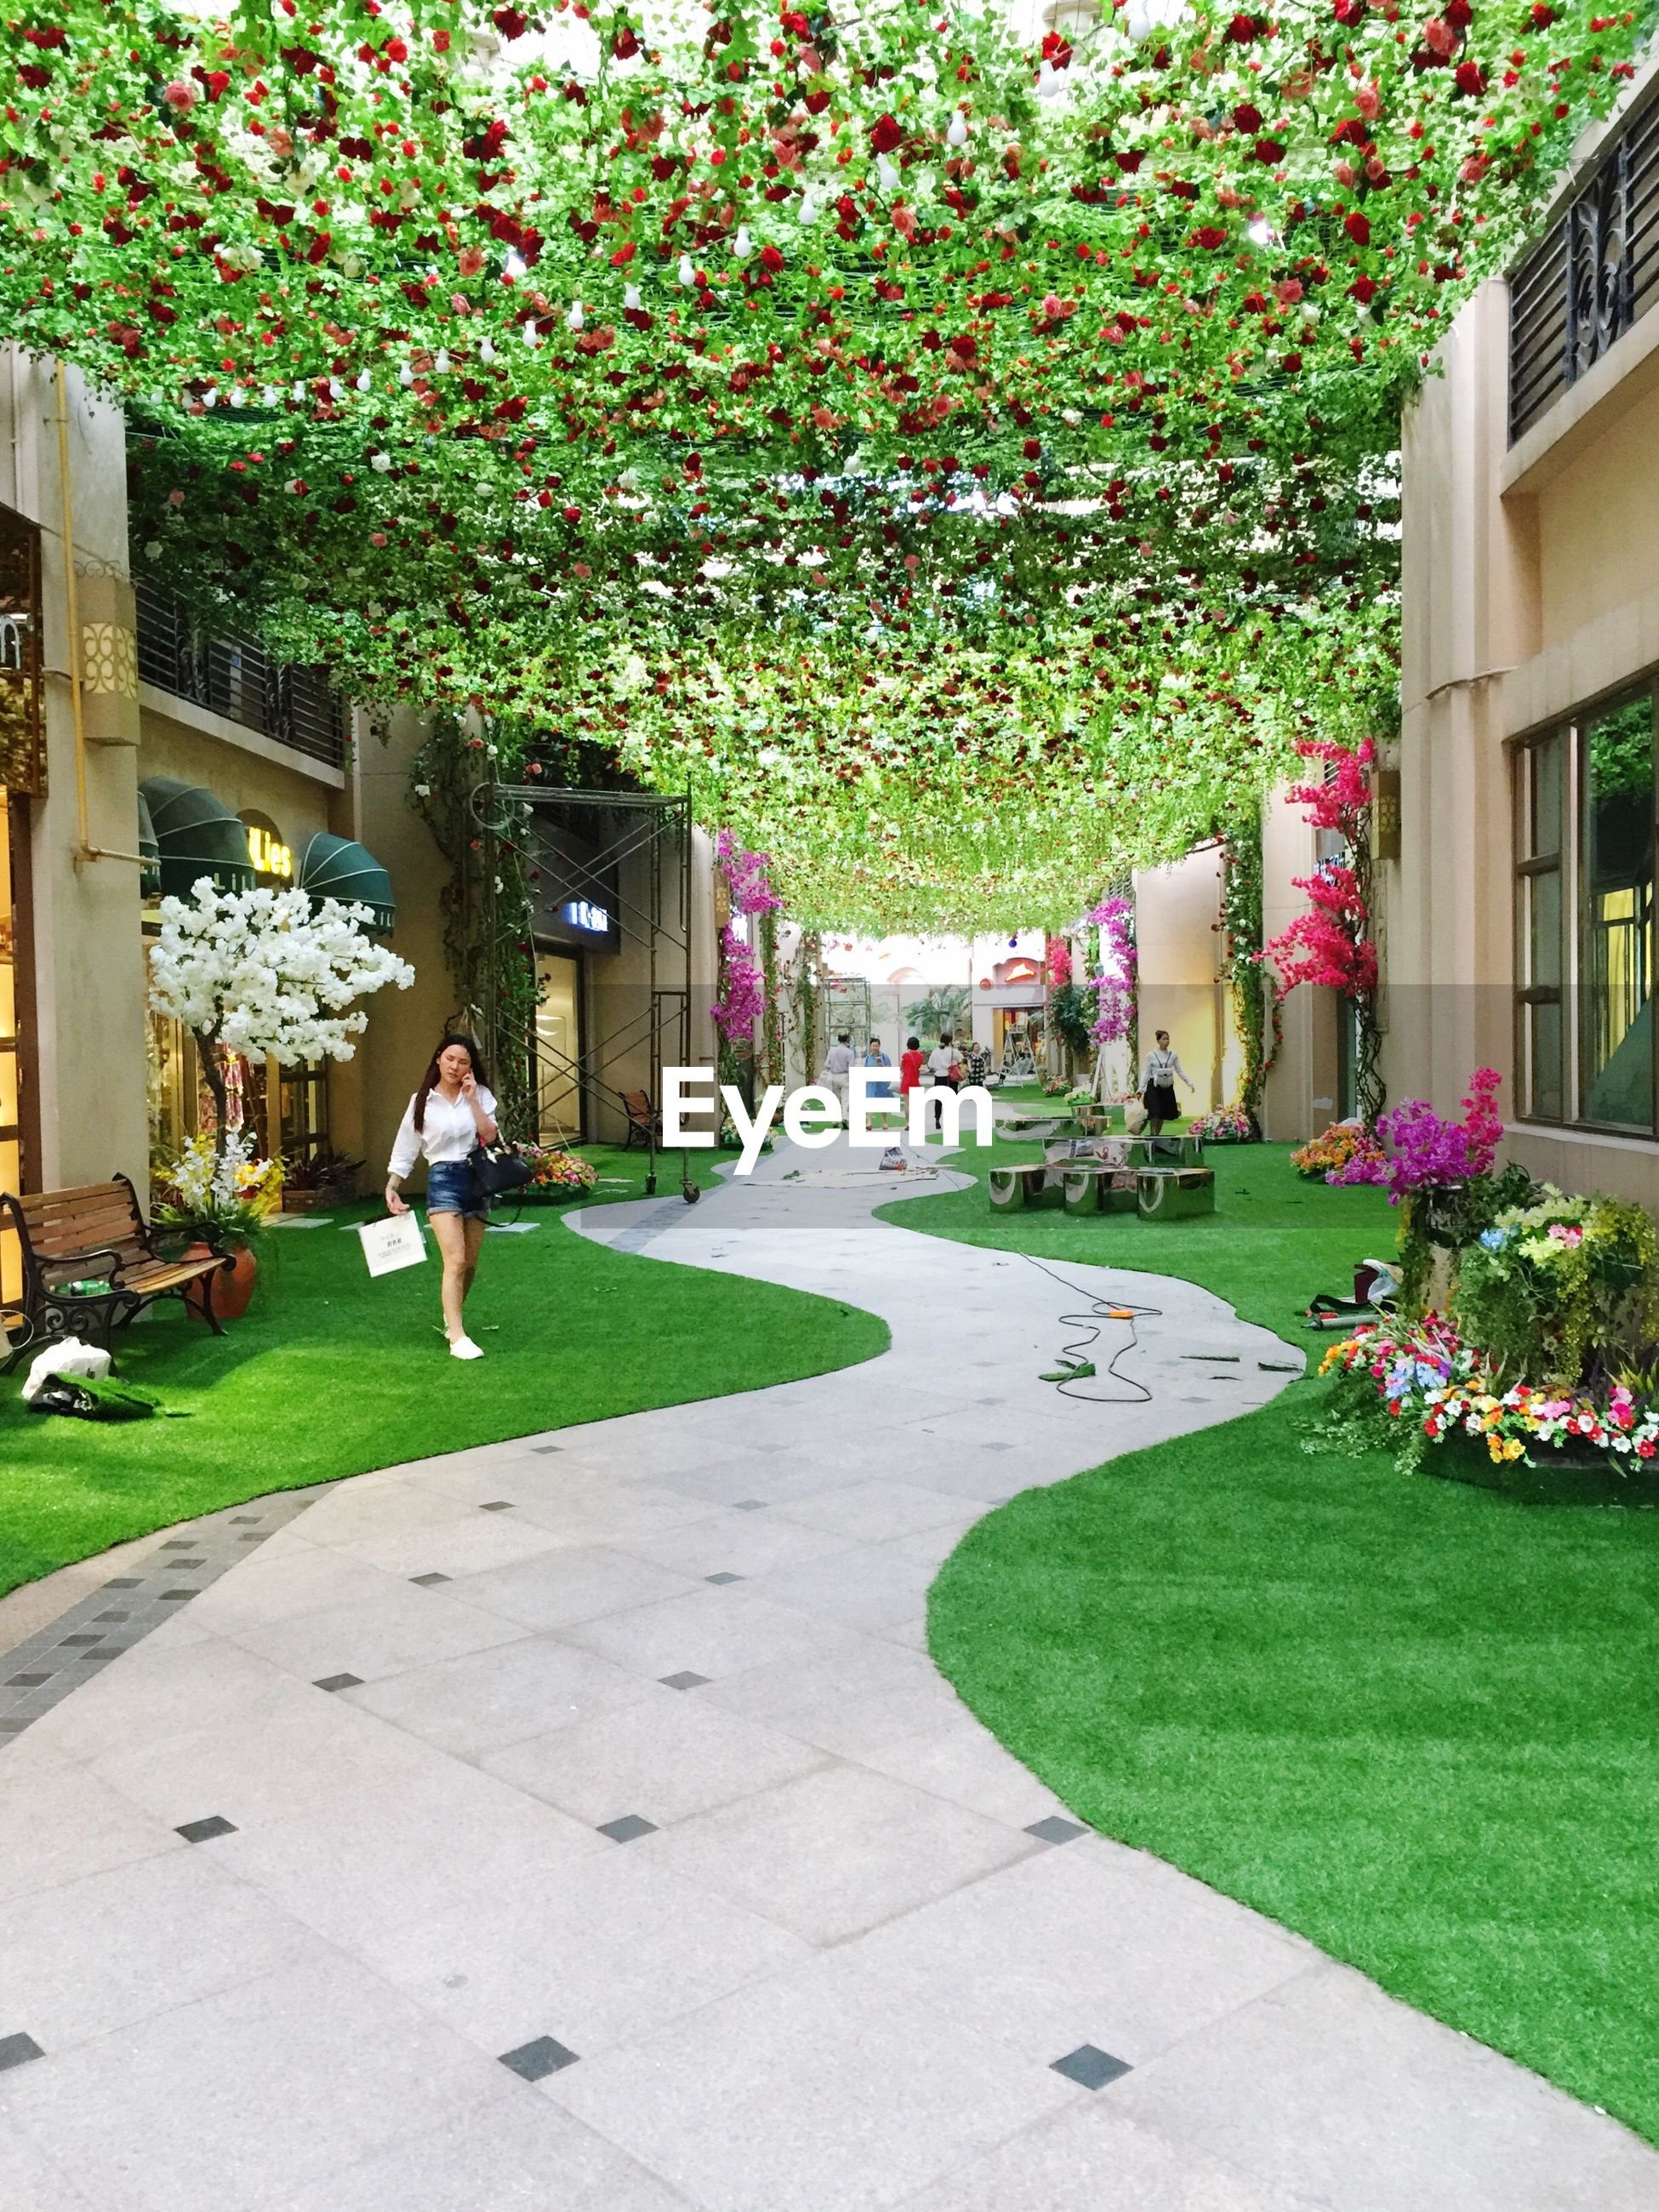 building exterior, grass, person, lifestyles, architecture, men, built structure, leisure activity, walking, tree, flower, lawn, park - man made space, full length, city, green color, sunlight, large group of people